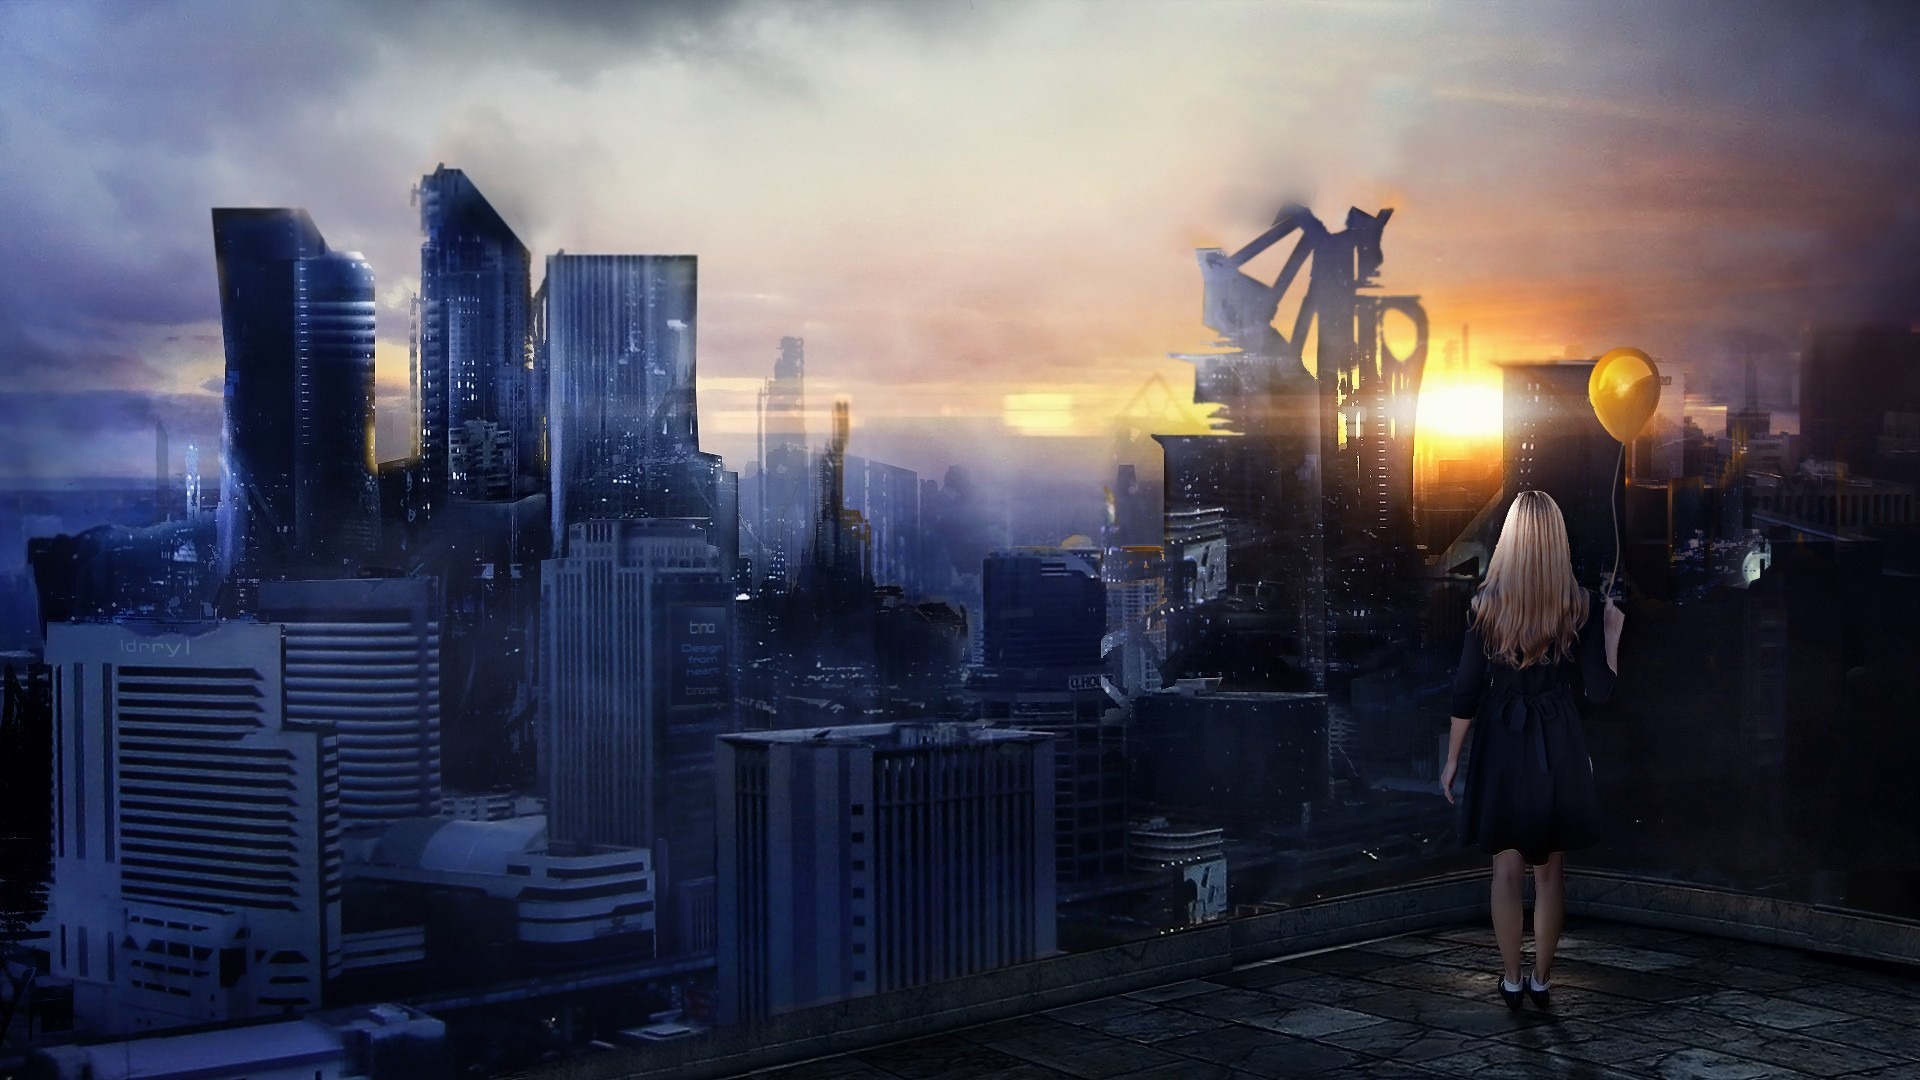 Futuristic City Wallpaper 1920x1080 75 Images